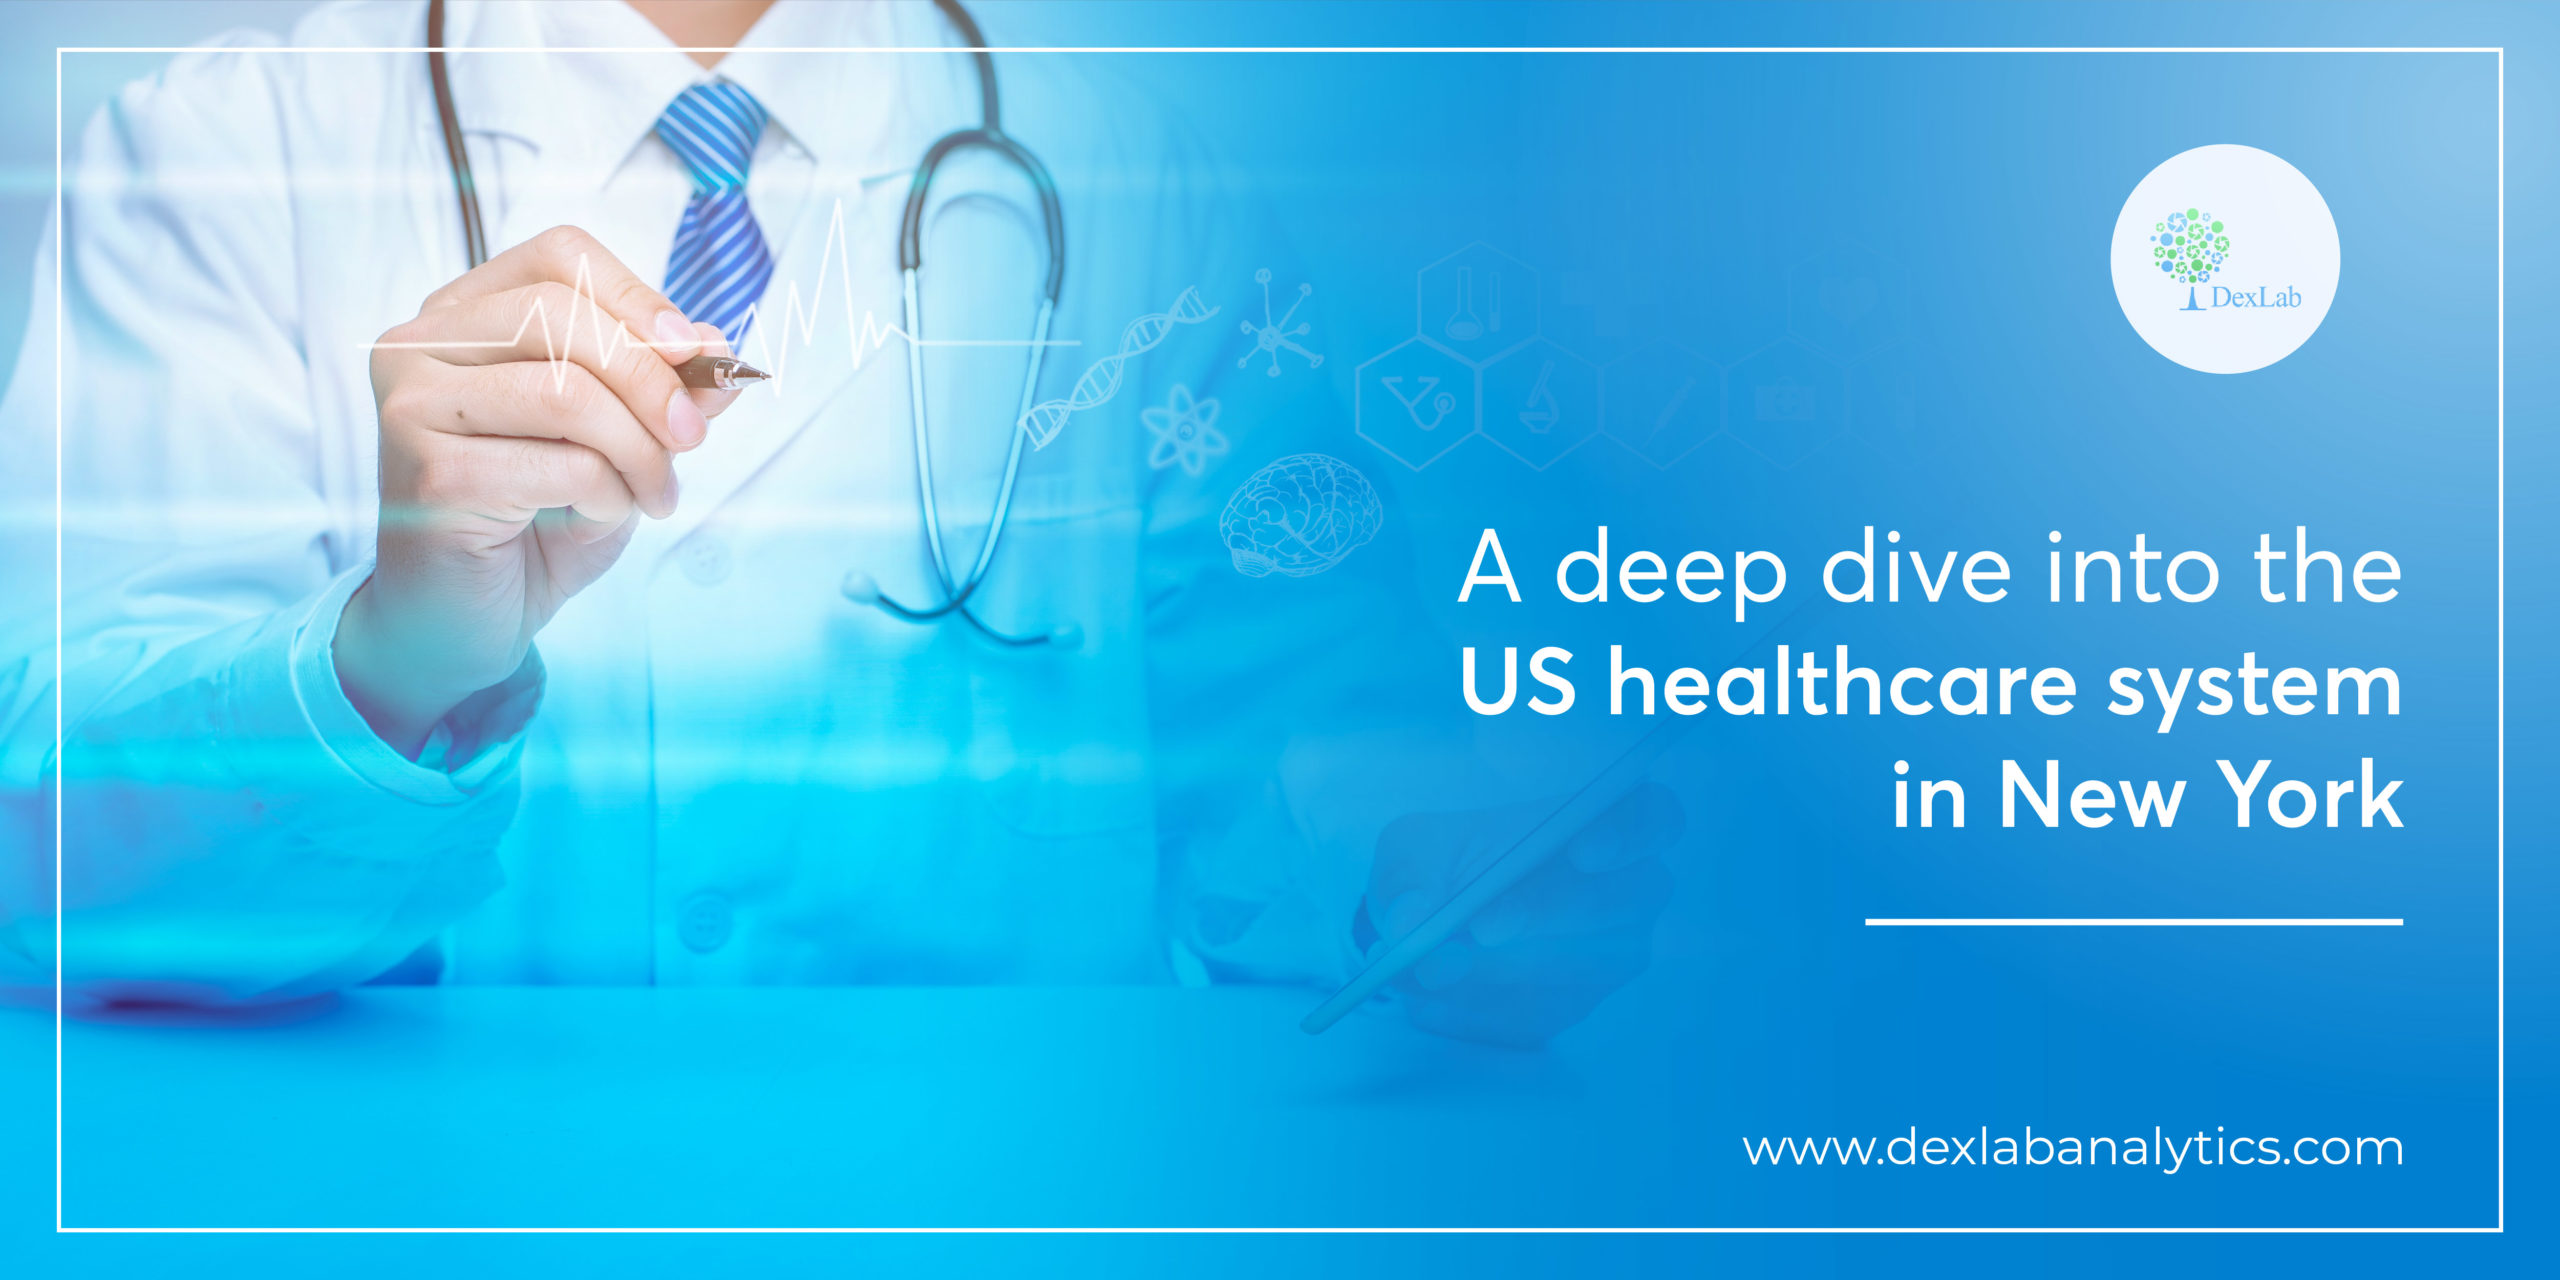 A Deep Dive Into The US Healthcare System in New York